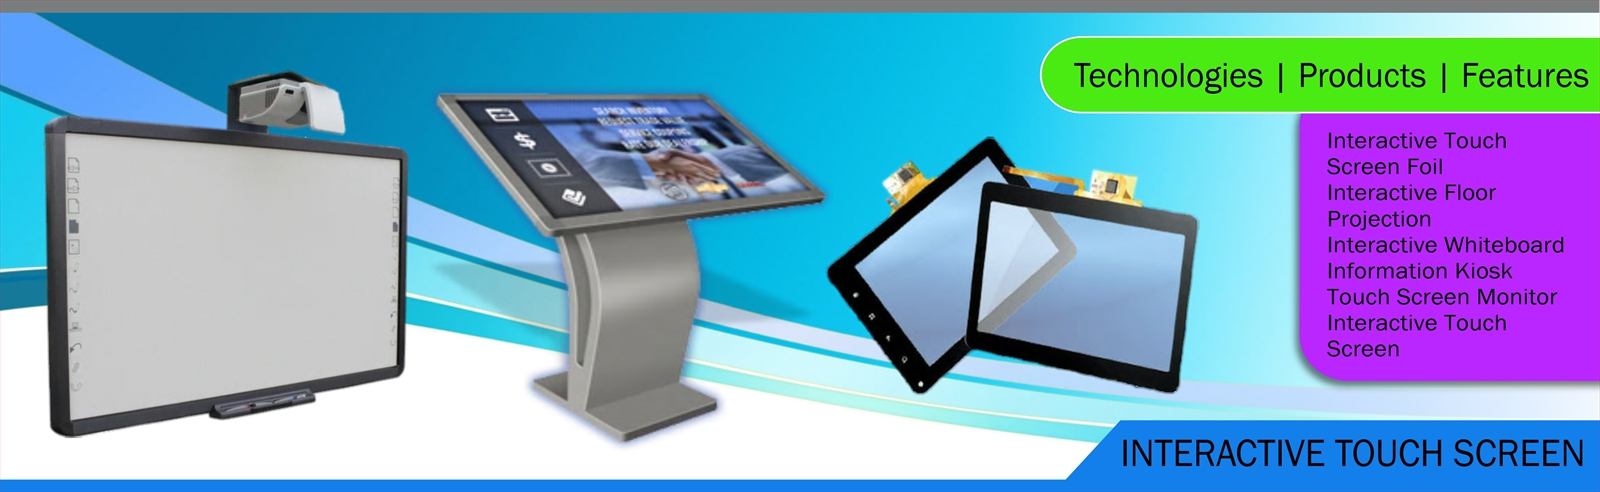 Elpro Technologies Interactive Touch Screen